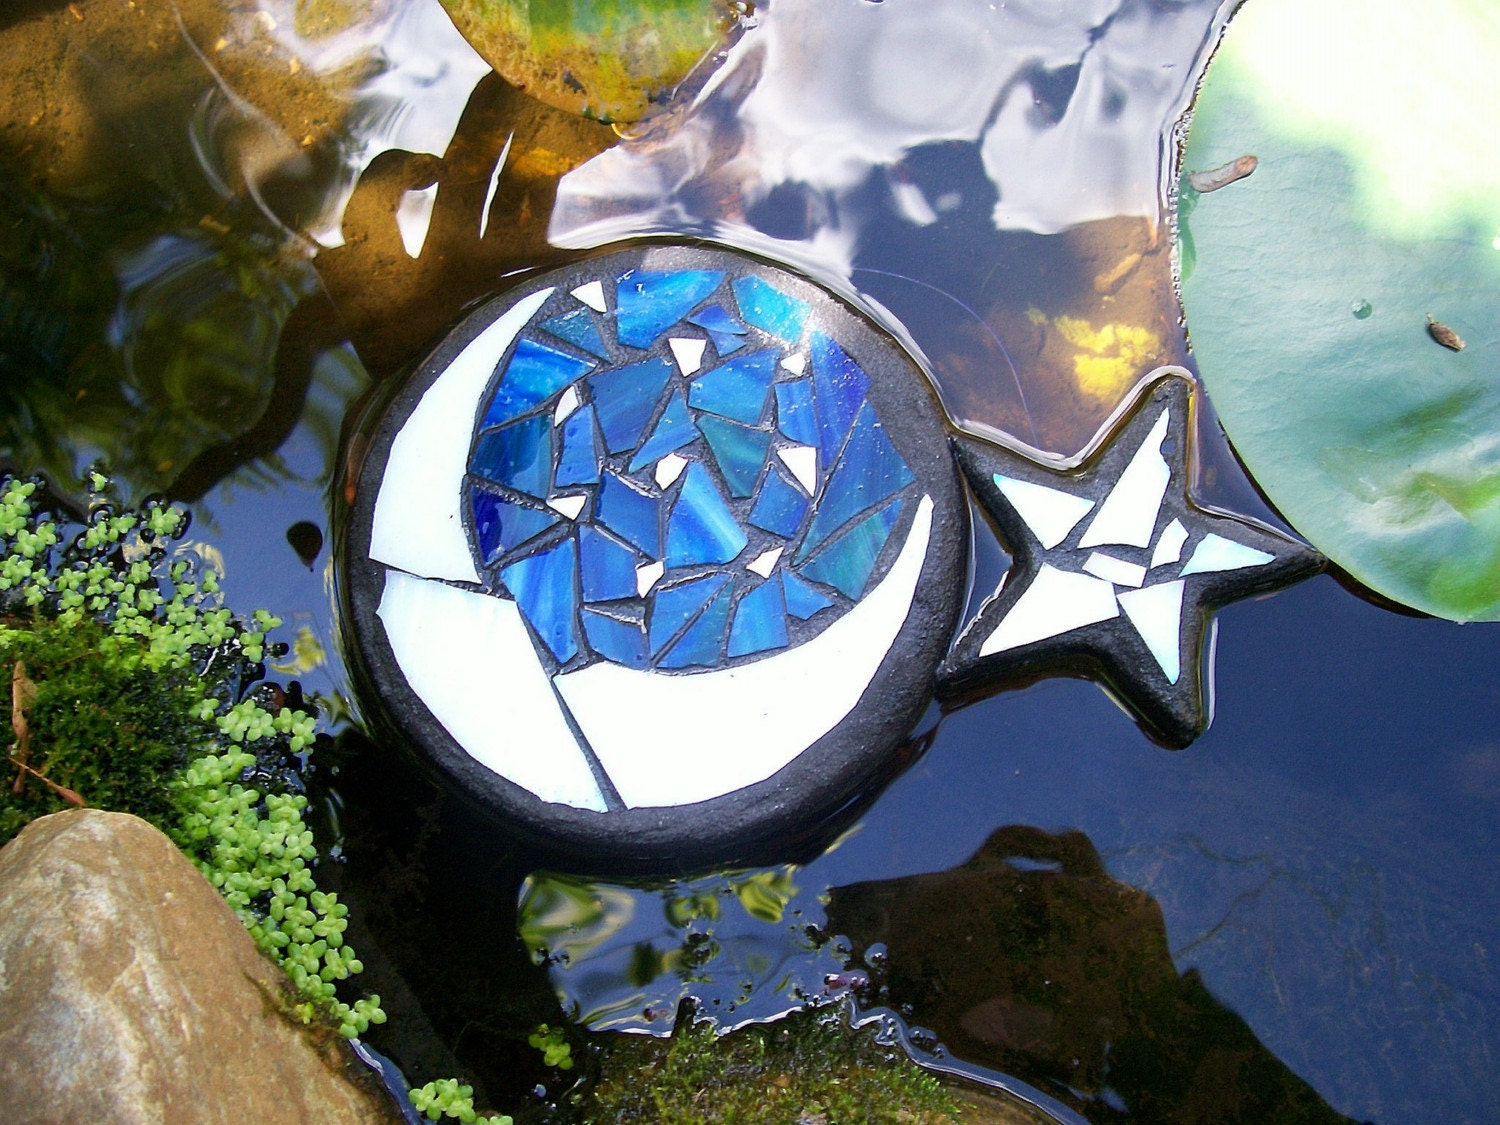 Moon and Star, Floating Glass Art Sculpture, for Water Gardens, Outdoor Rooms, Home Decor